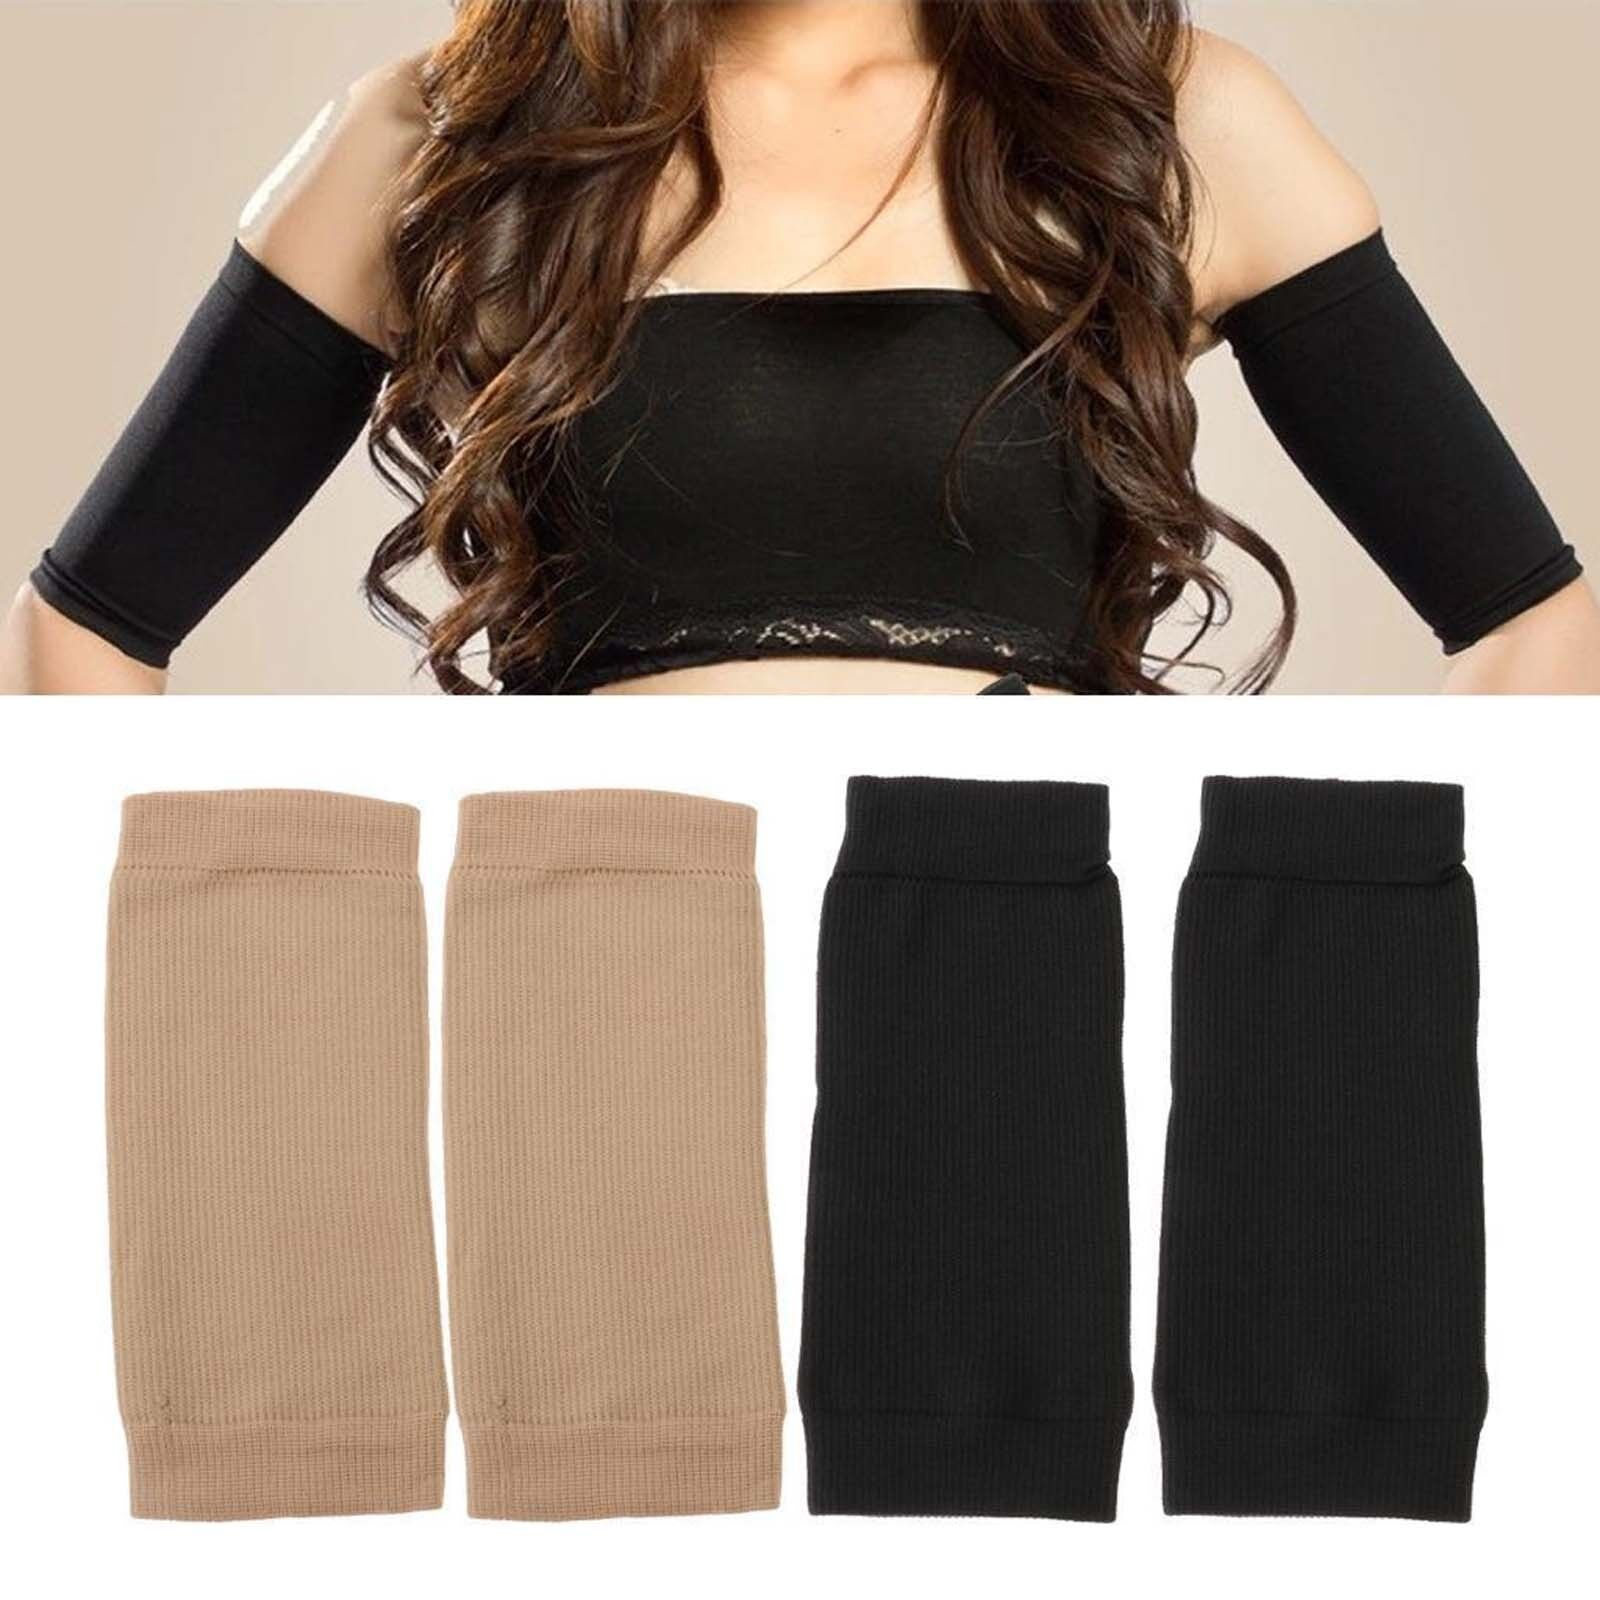 Compression Slim Arms Sleeve Shaping Arm Shaper Upper Arm Supports 2color Ol